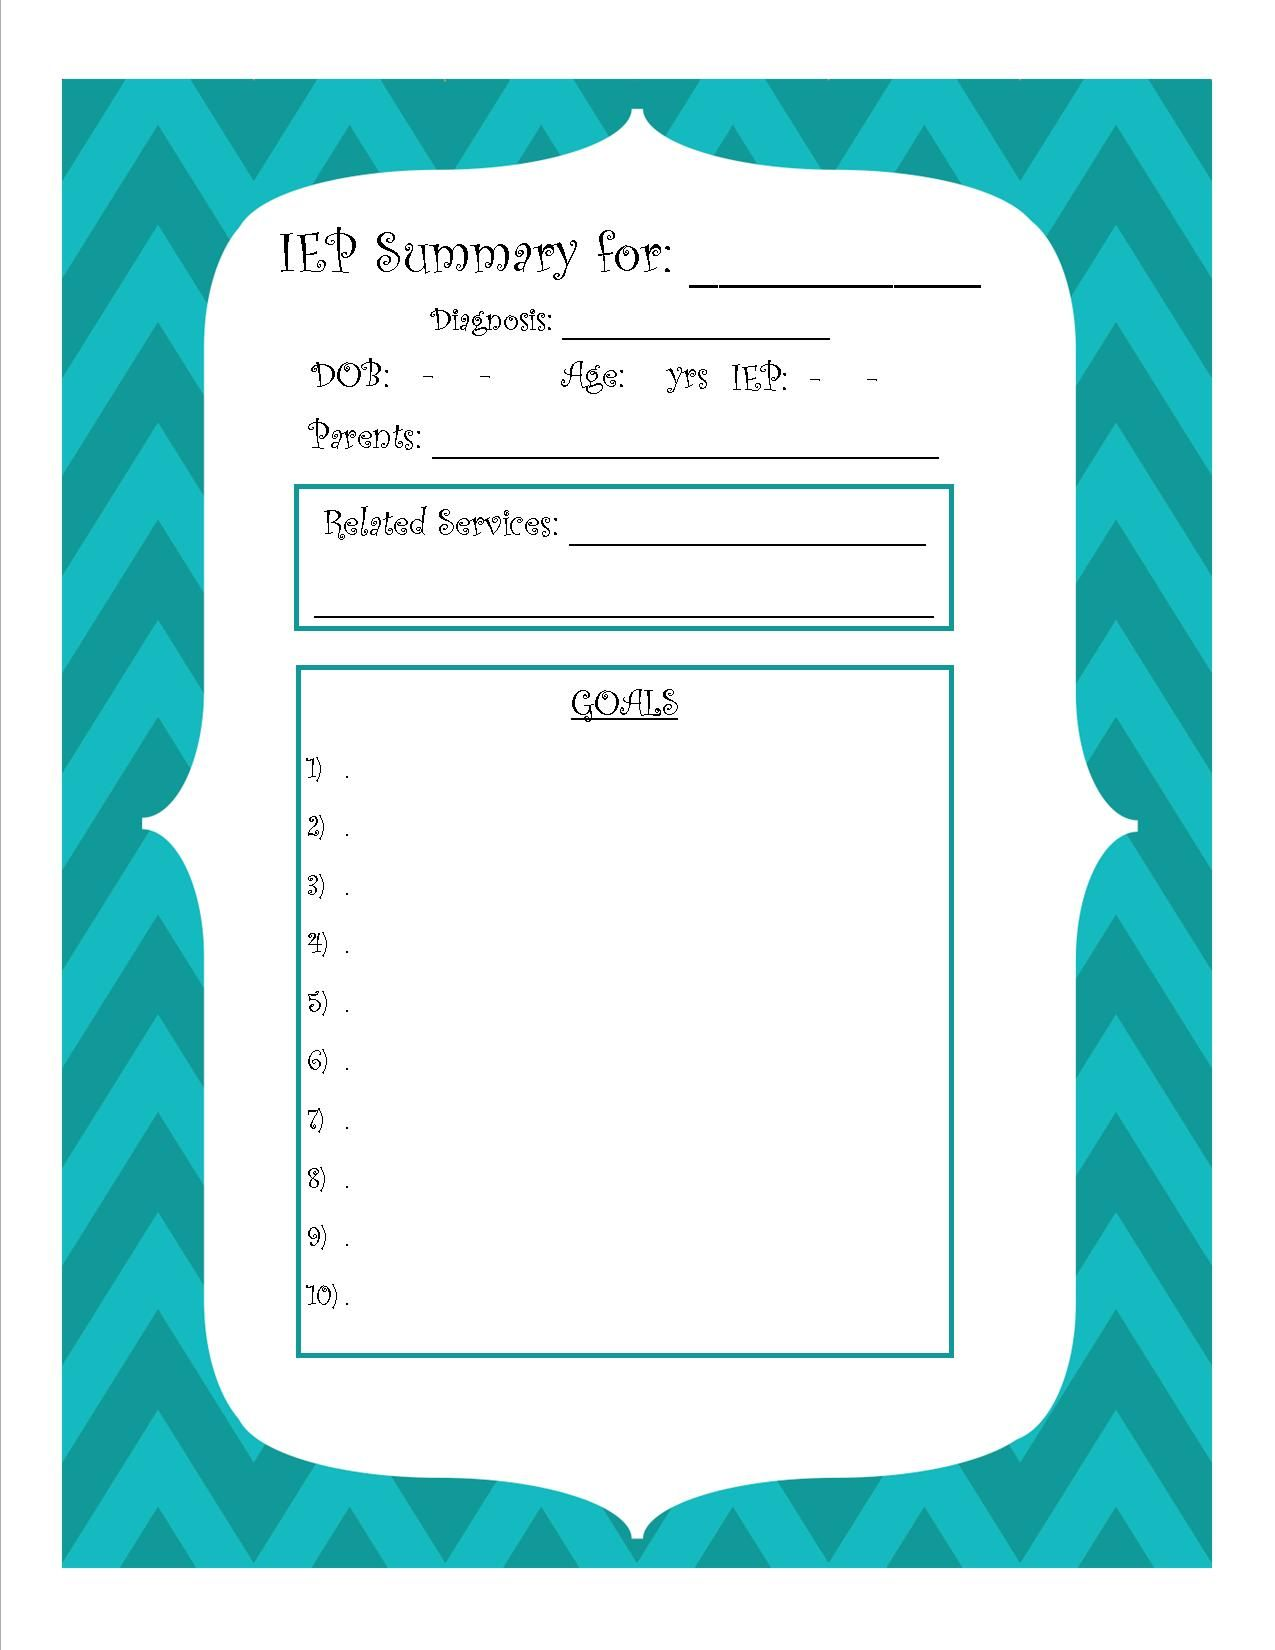 Easy And Simple Free Printable Iep Summary Sheet For Ecse Through High School Sped Students